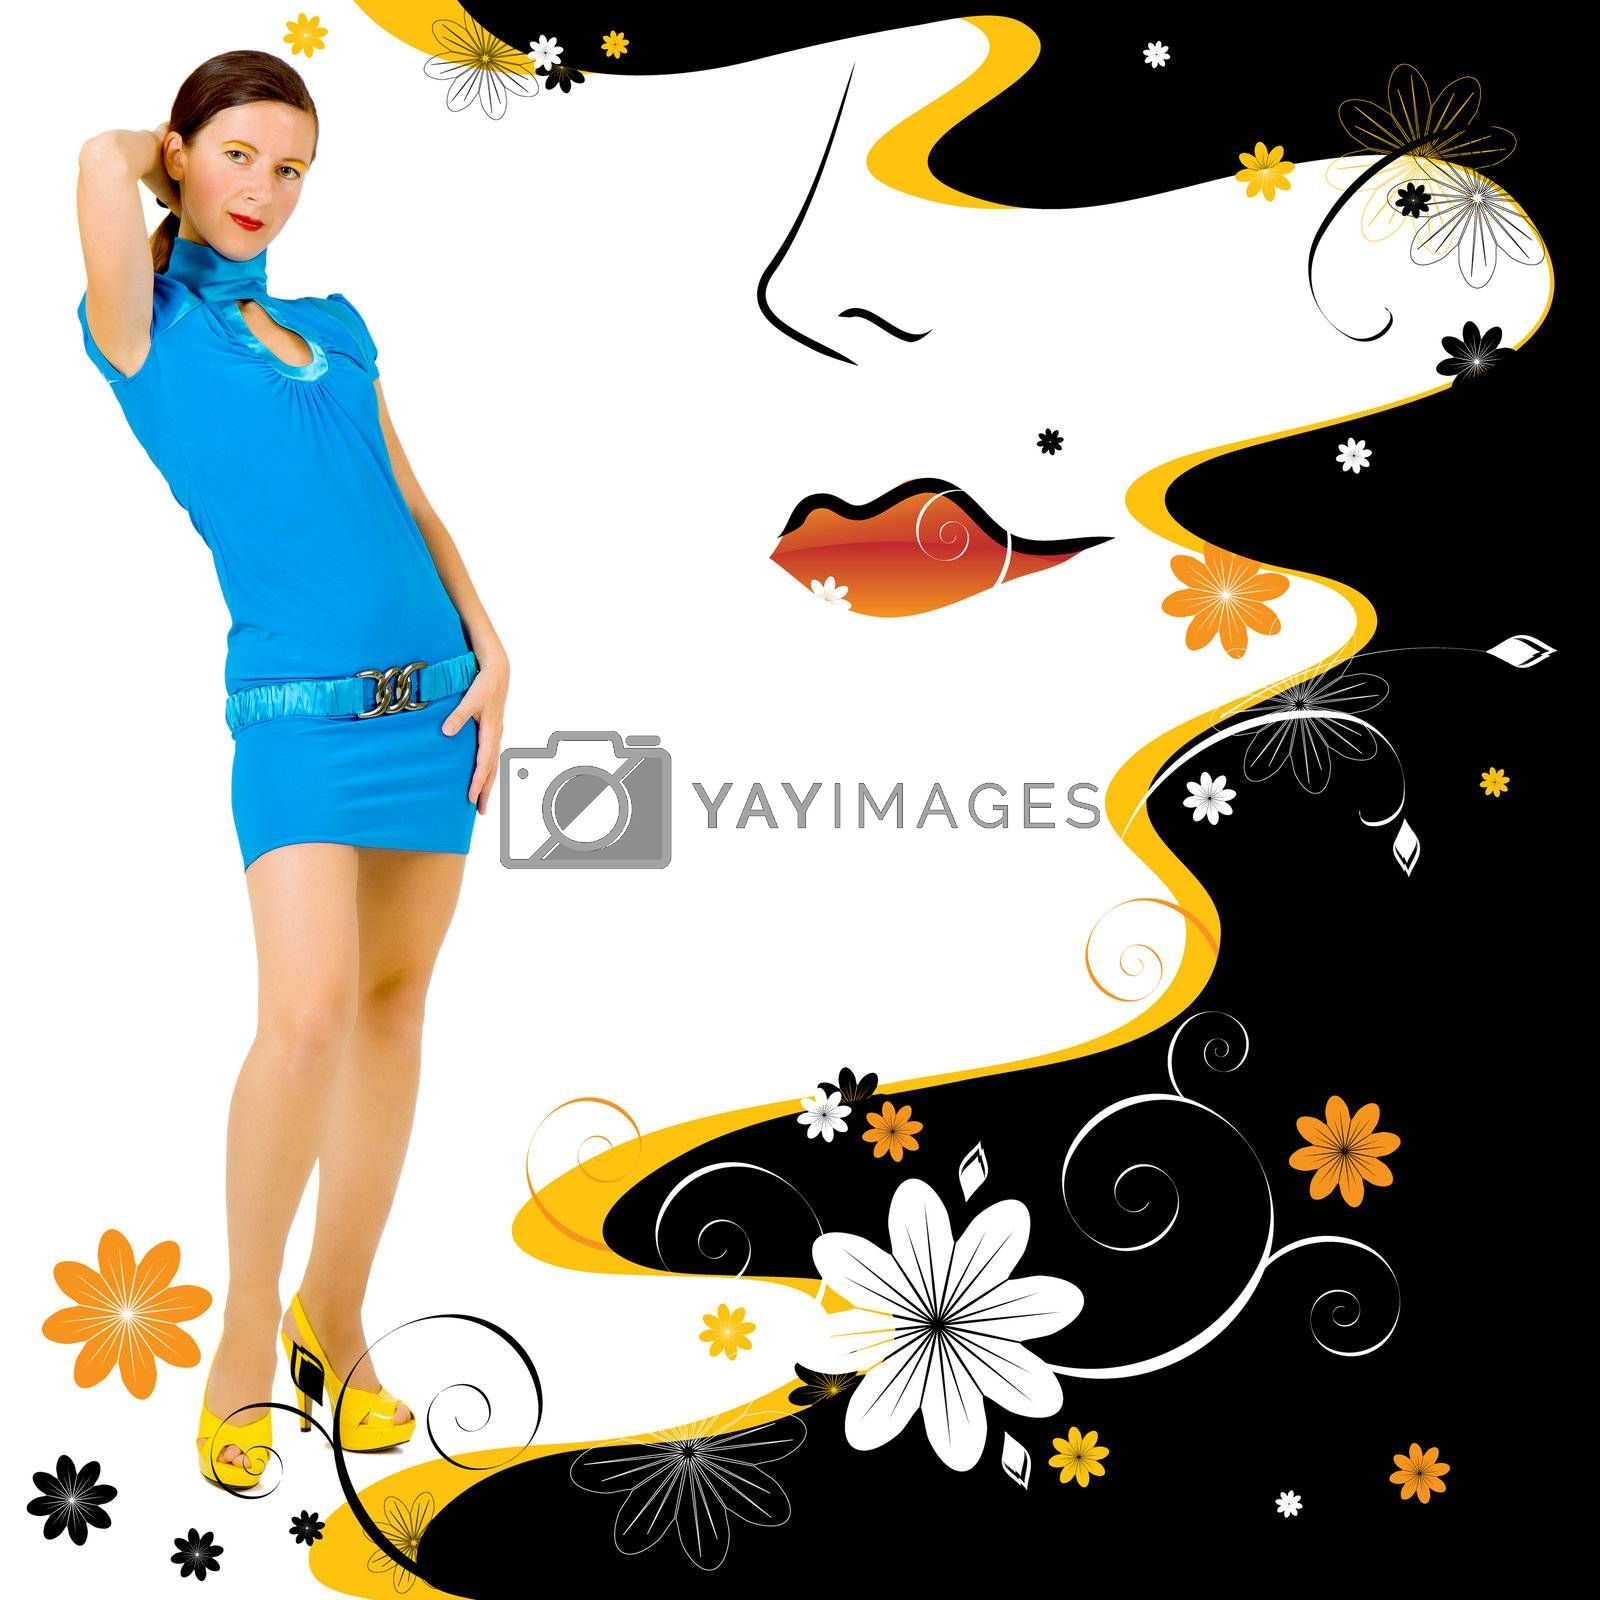 Fashion girl with the illustrated floral background